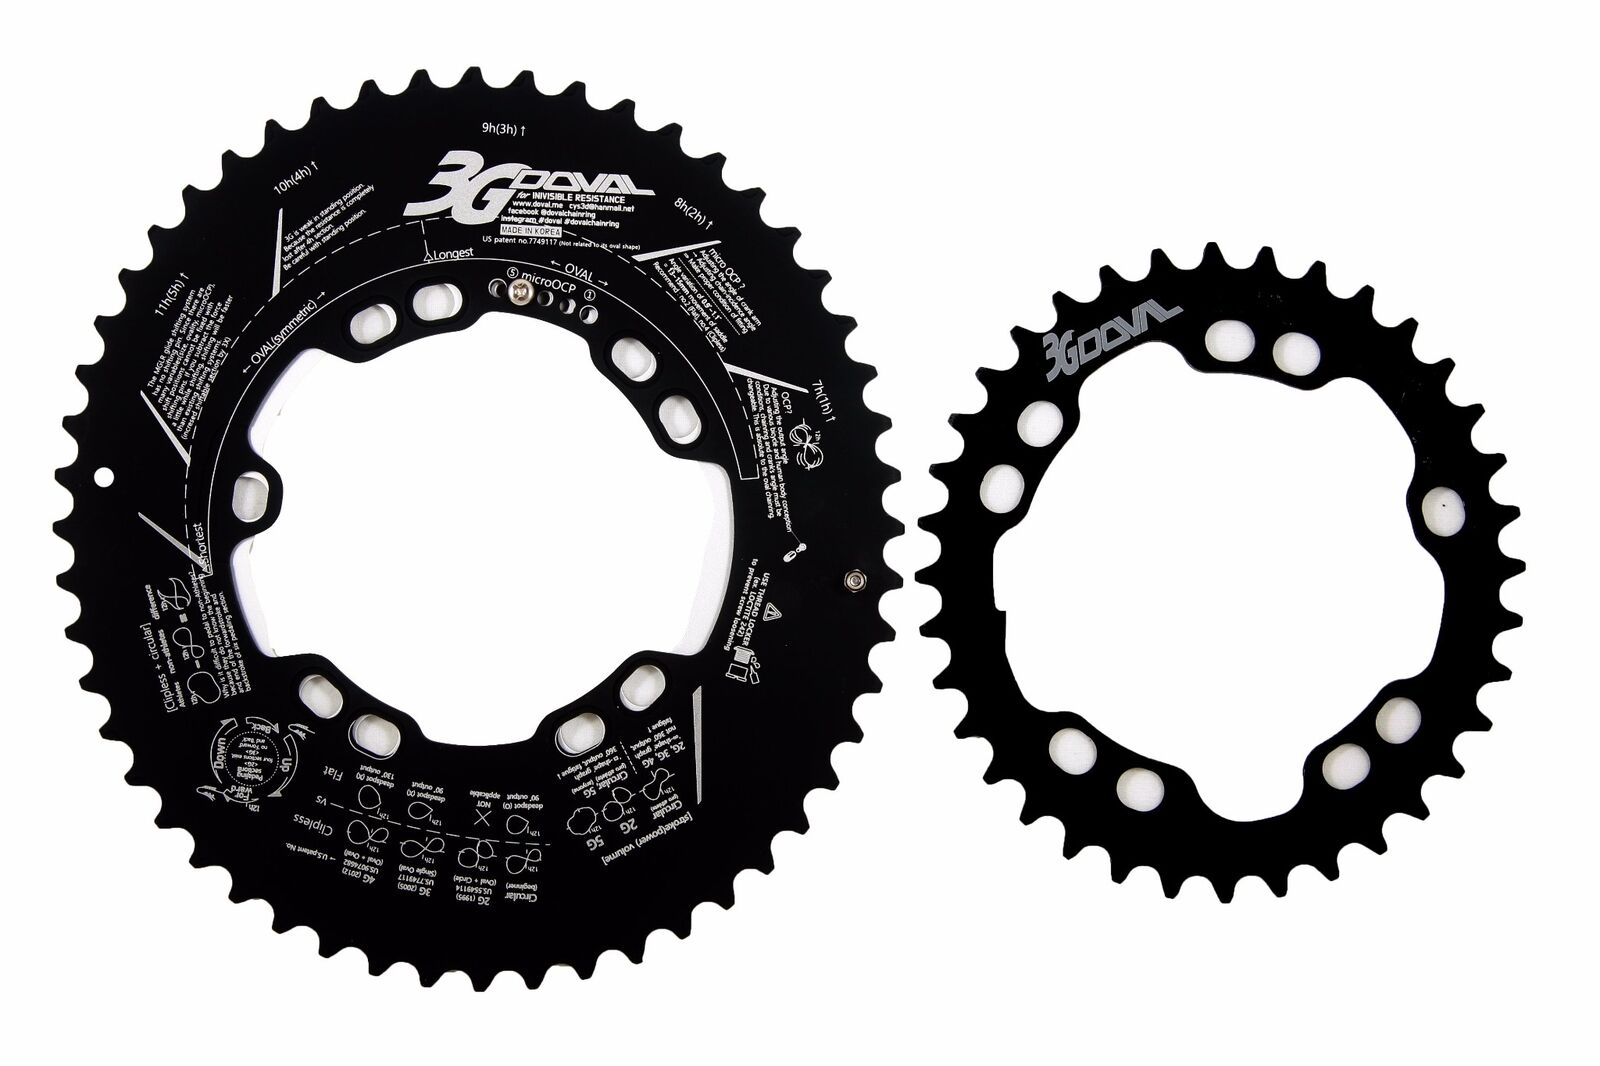 3G Doval Chainring  BCD110 for 45arm shimano/etc... (Buy 3+ Shipping discount)